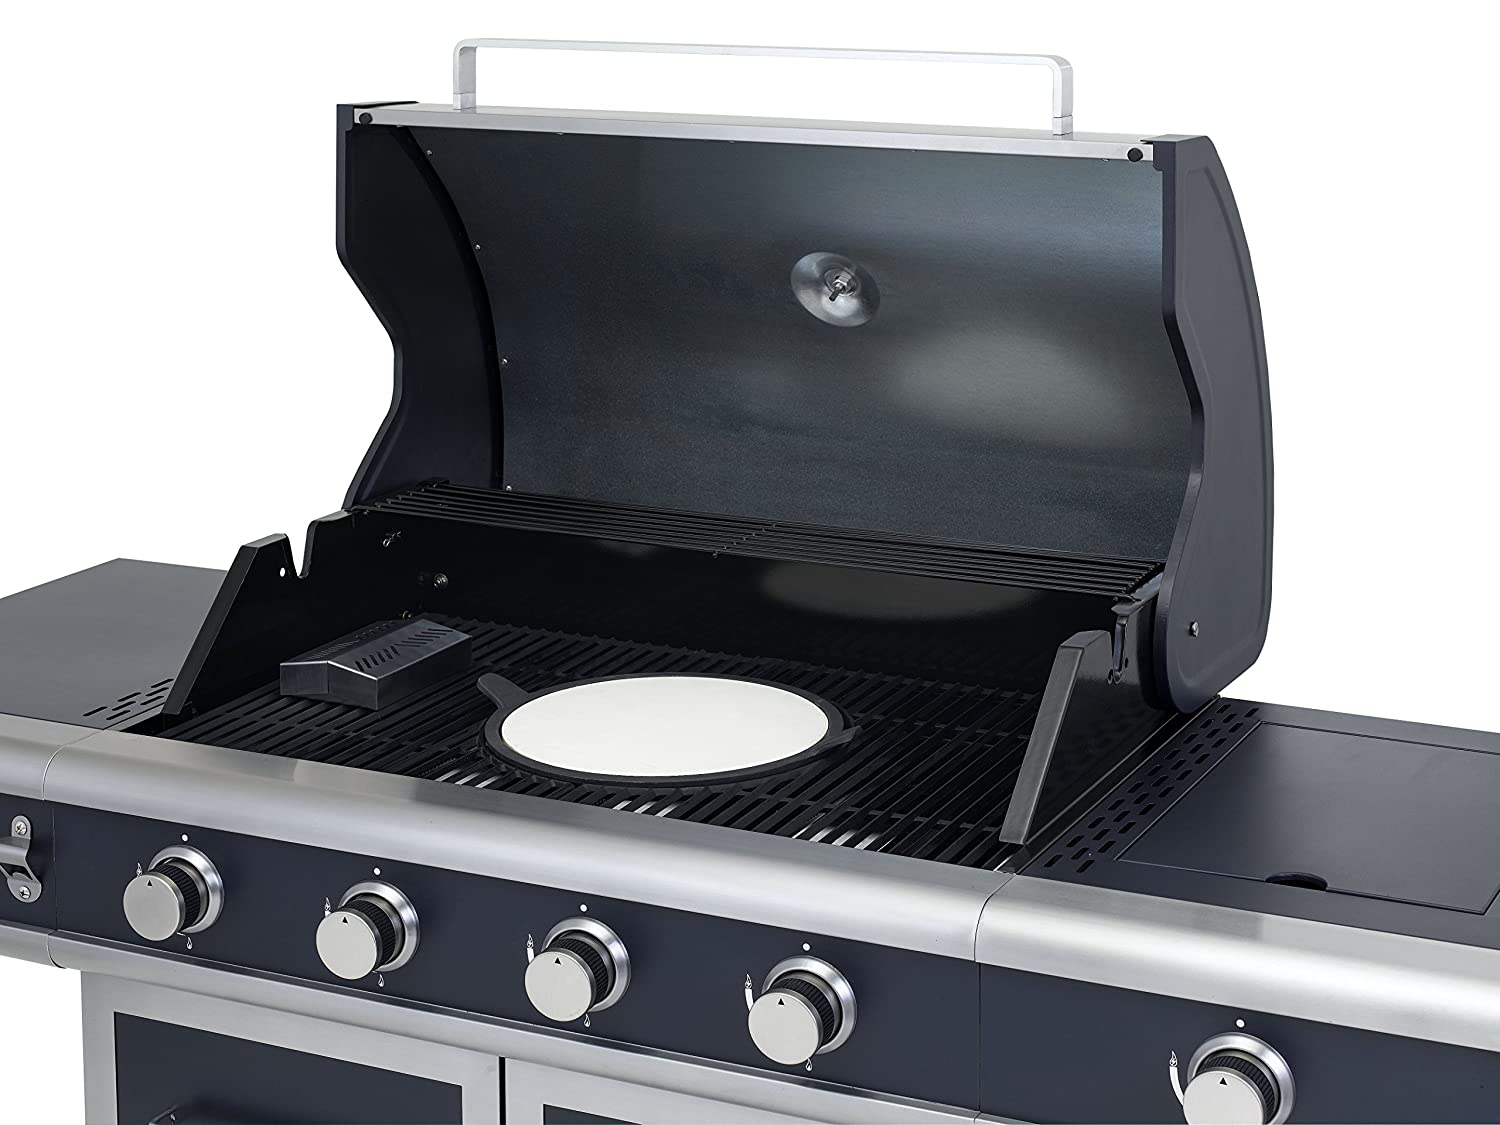 Tepro Gasgrill Vancouver Test : Grill vancouver test vergleich grill vancouver günstig kaufen